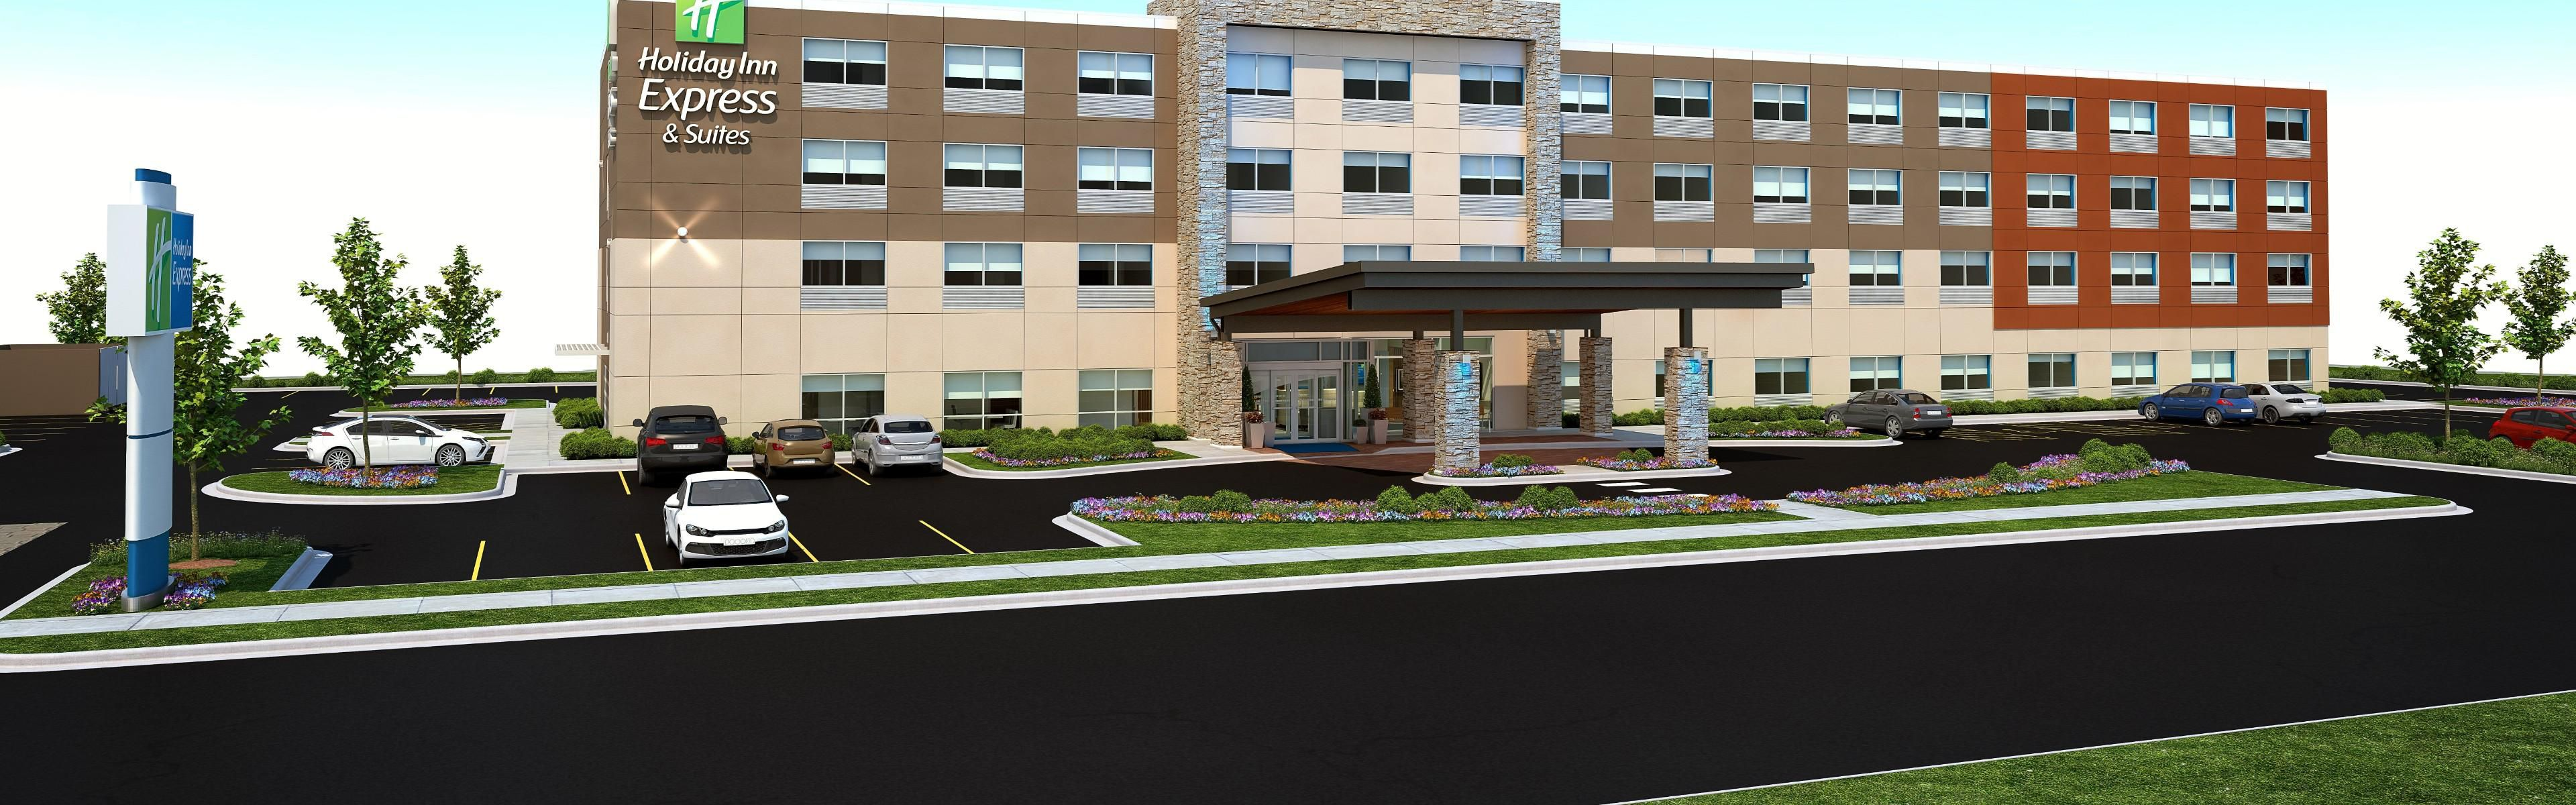 Holiday Inn Express & Suites Perryville I-55 image 0